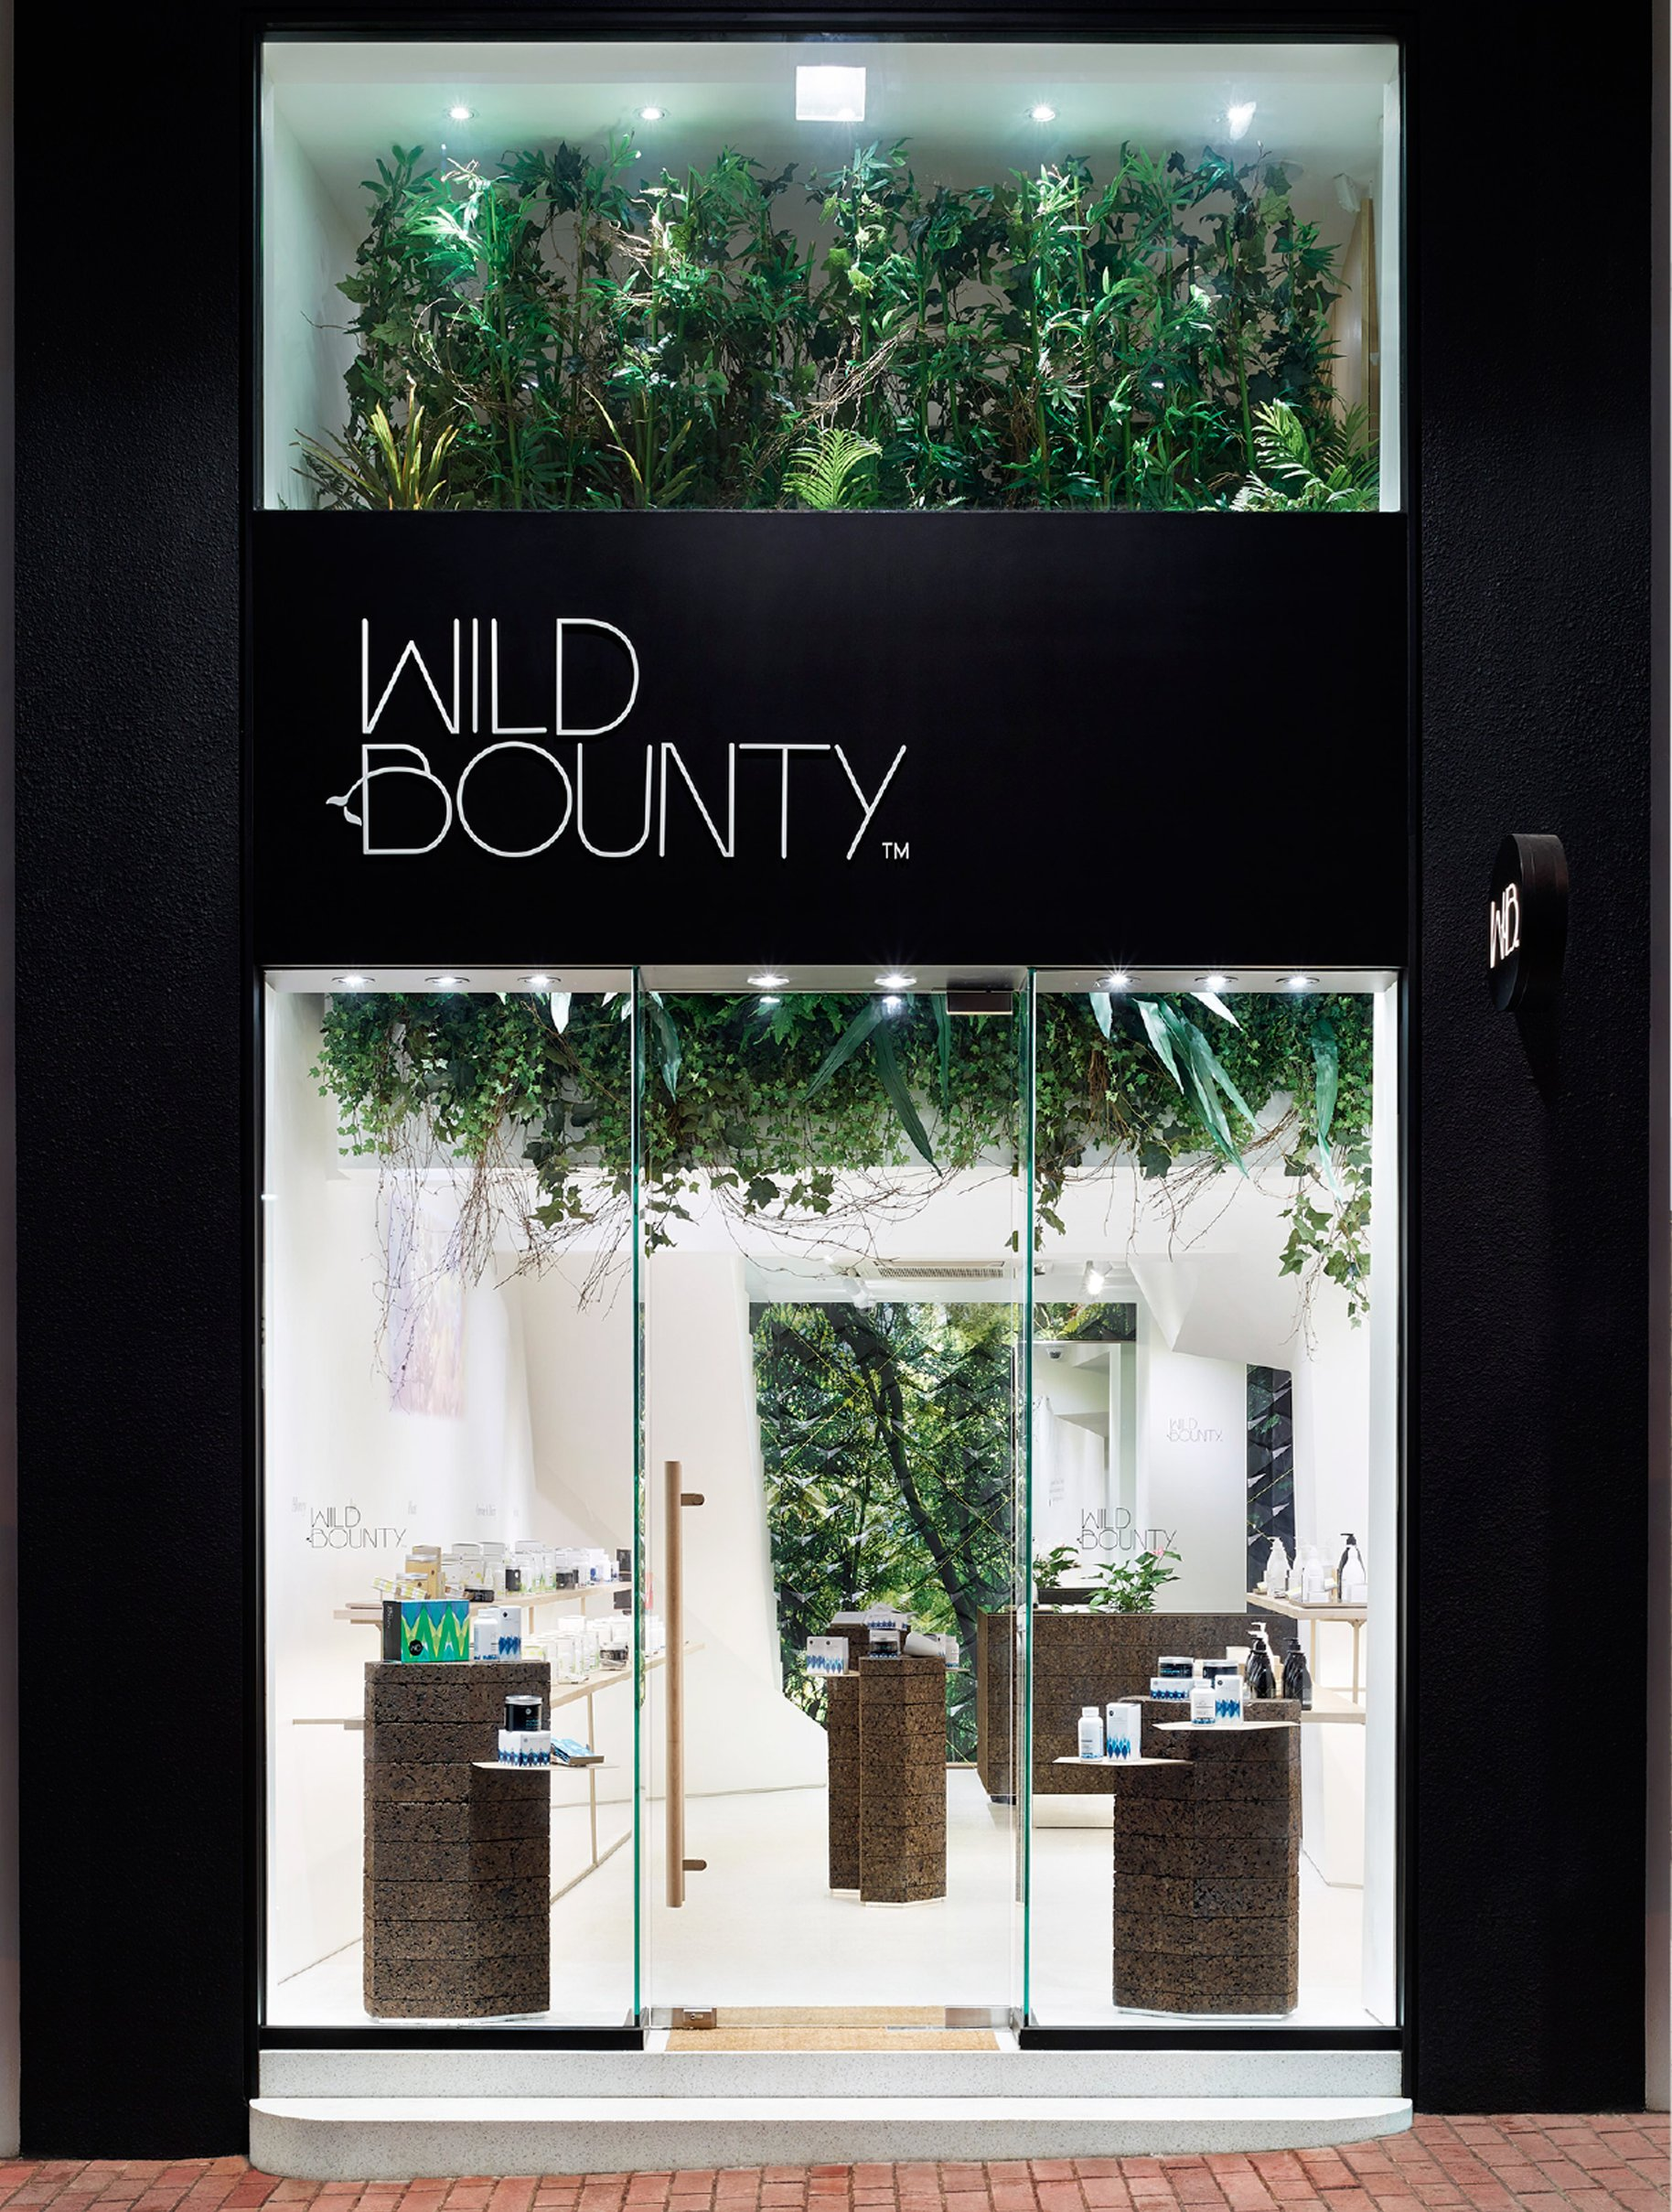 Wild Bounty store front spatial design photography